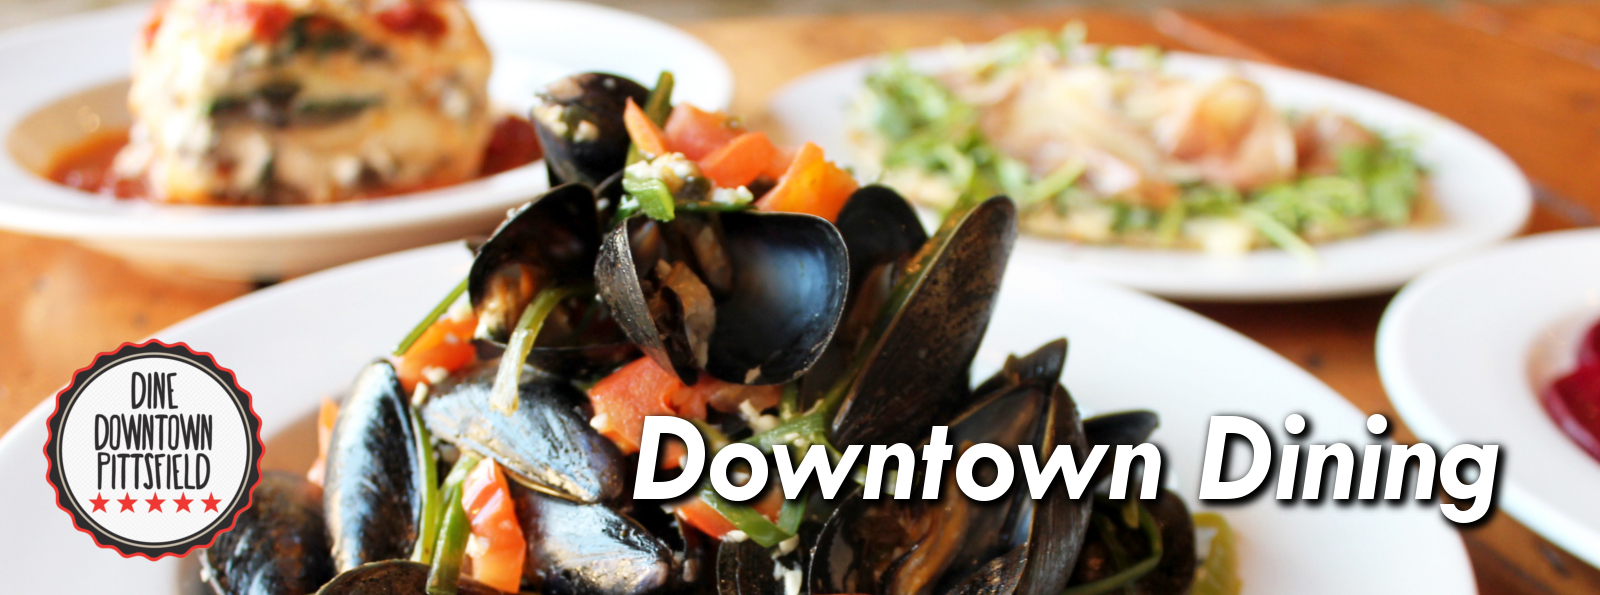 Downtown Pittsfield MA Dine Dining Restaurants